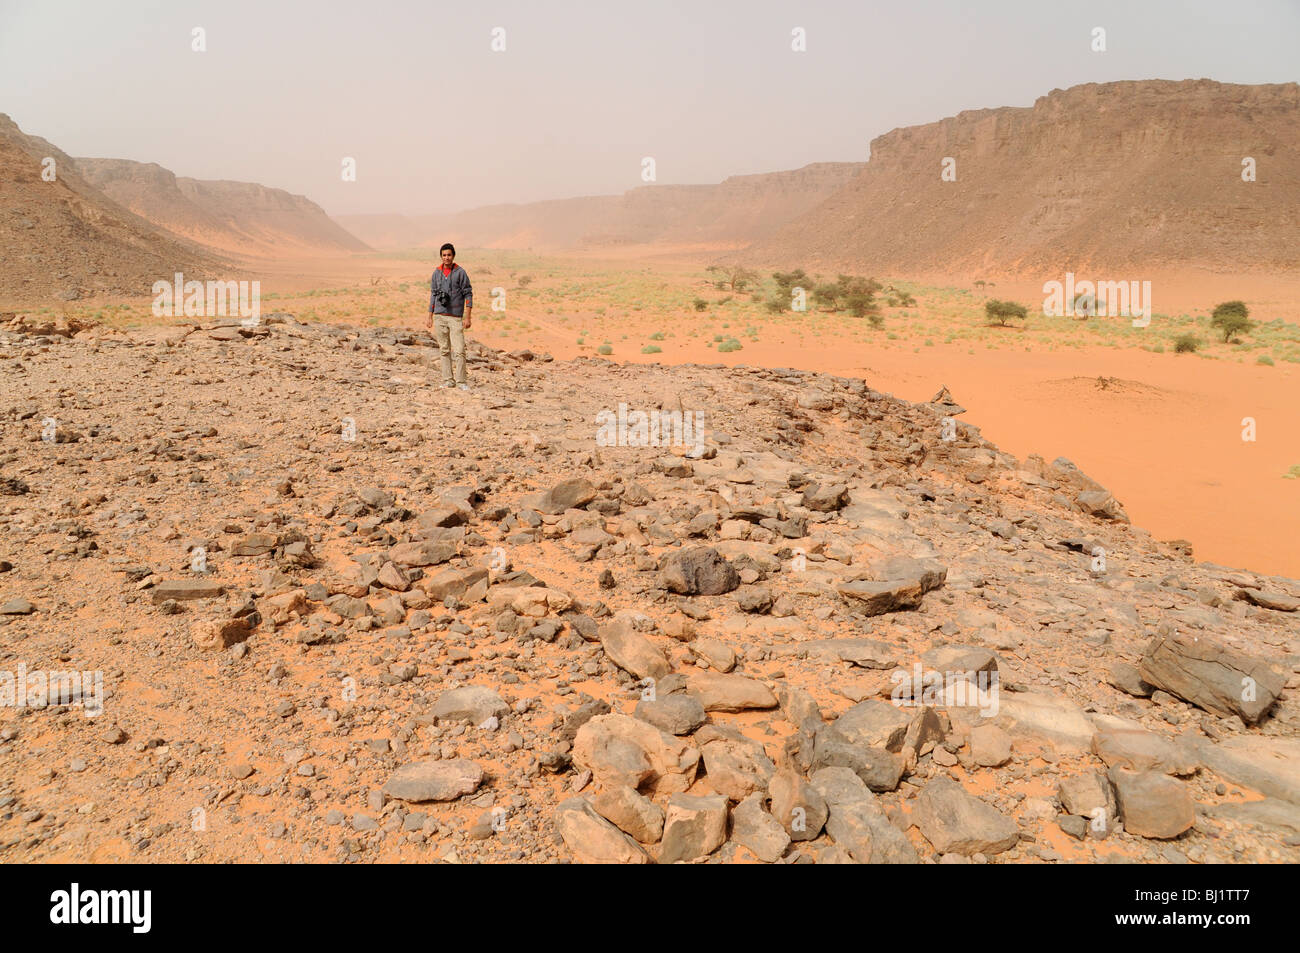 A view of the Wadi Hamra area of the Gilf Kebir, in Egypt's Western (Libyan) Desert region. - Stock Image